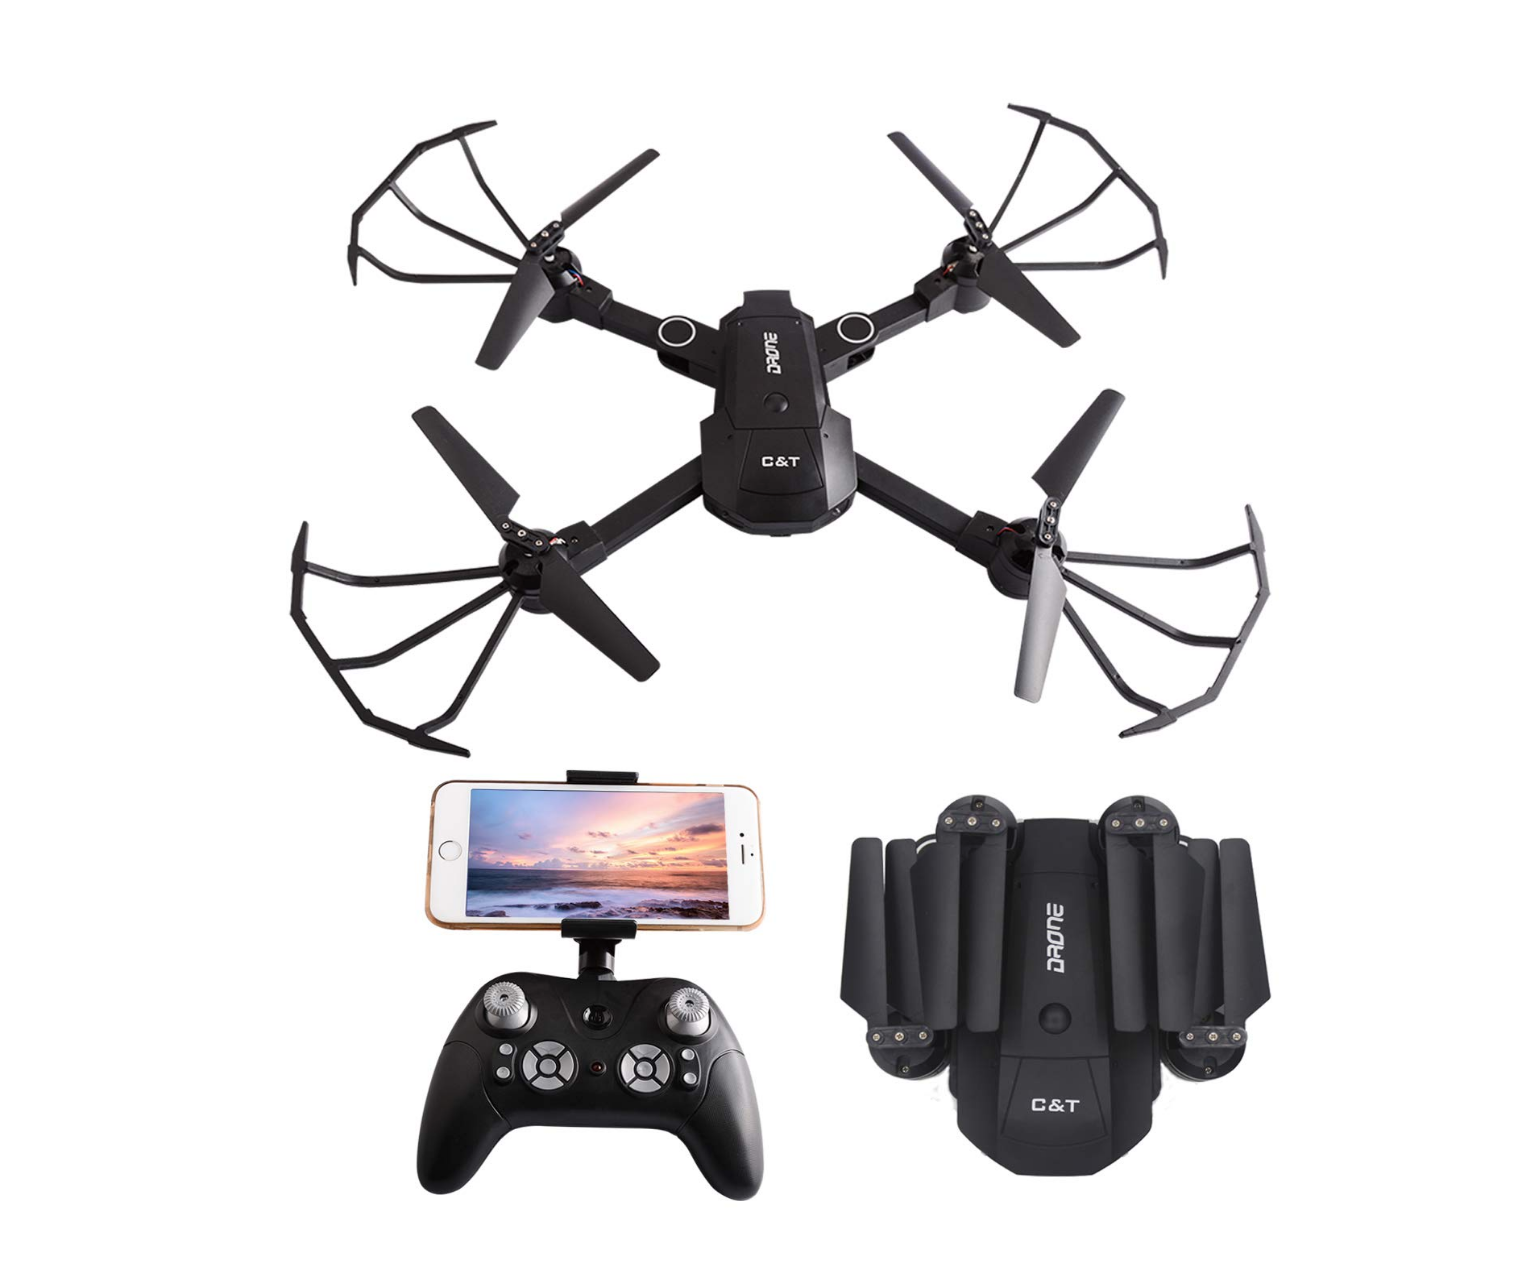 This Quadcopter Drone with 1080p camera in Amazon's Hidden Gems sale is under £32